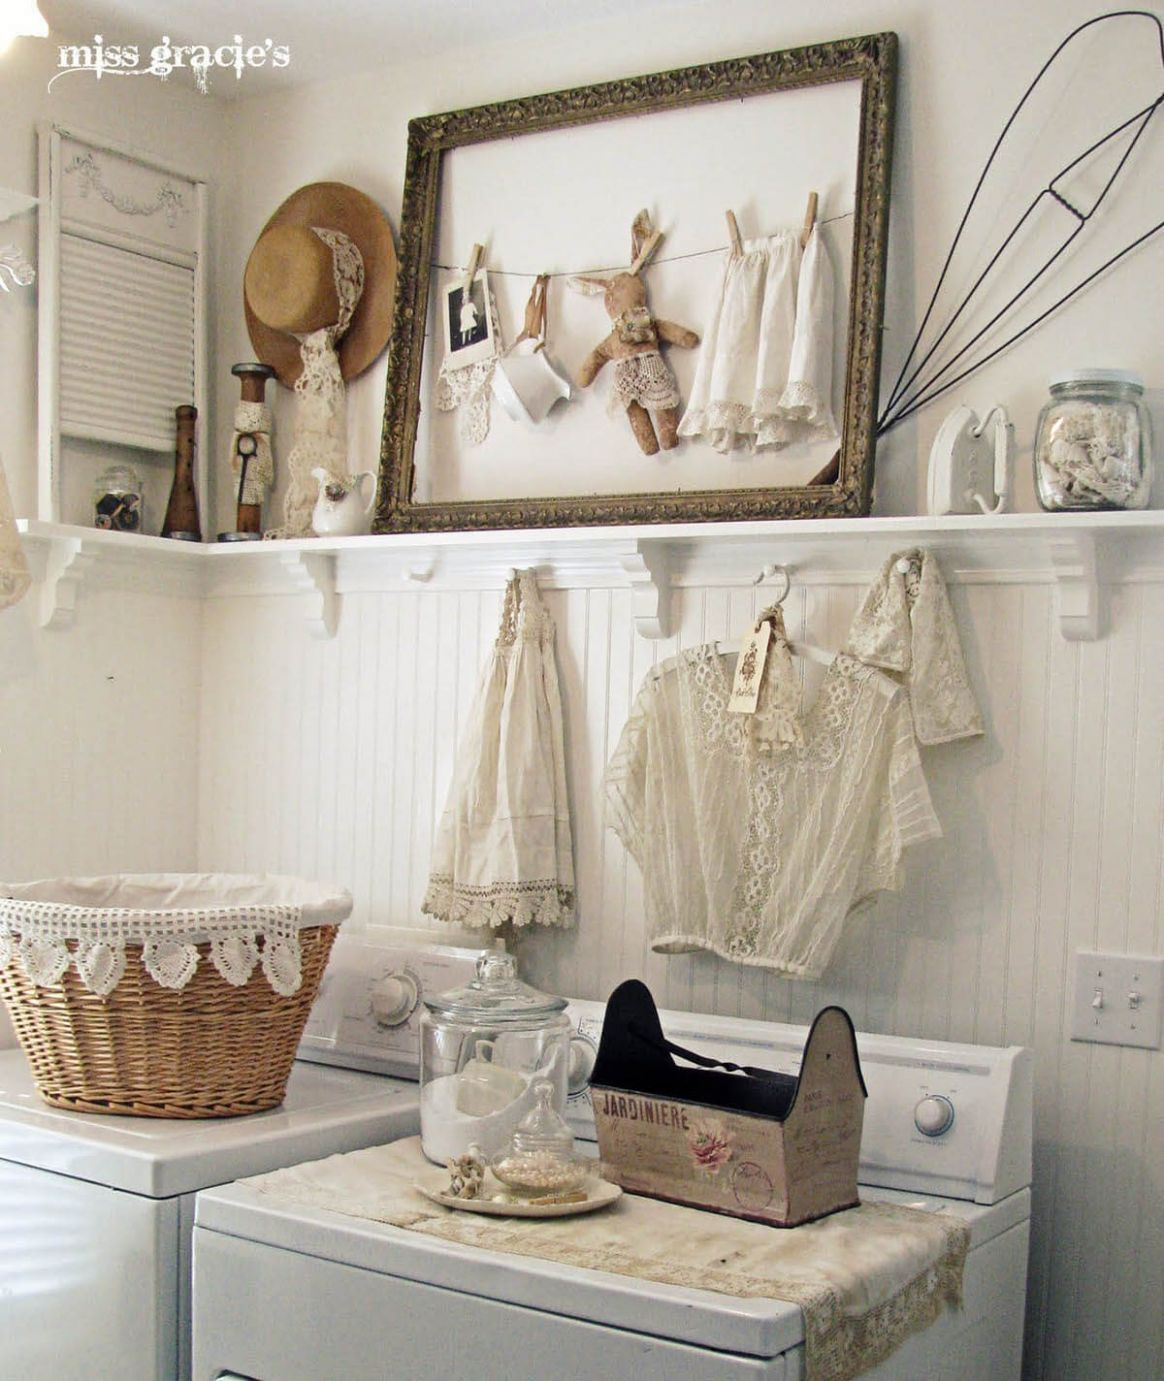 12 Best Vintage Laundry Room Decor Ideas and Designs for 12 - laundry room art ideas